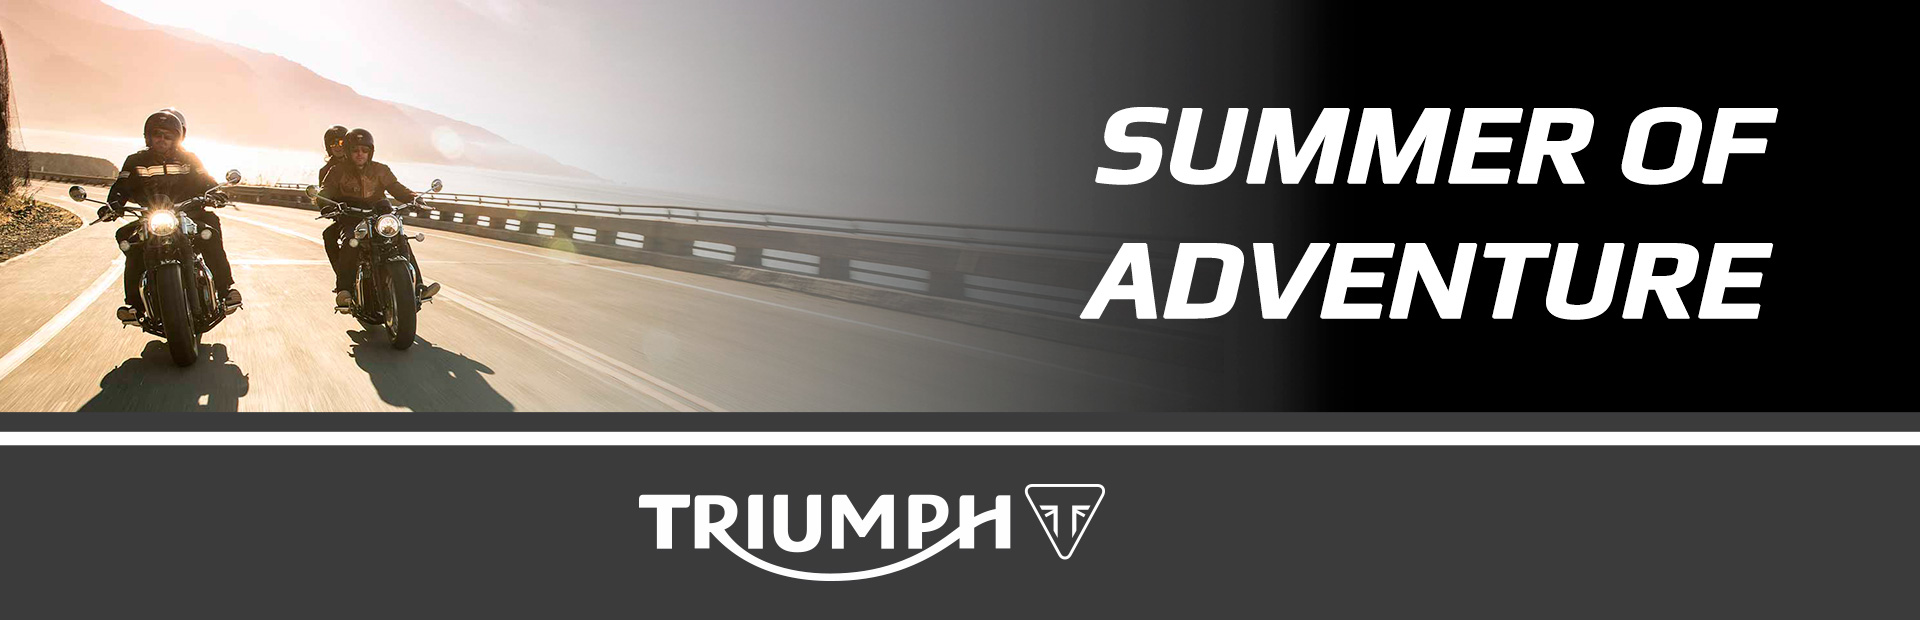 Triumph: SUMMER OF ADVENTURE